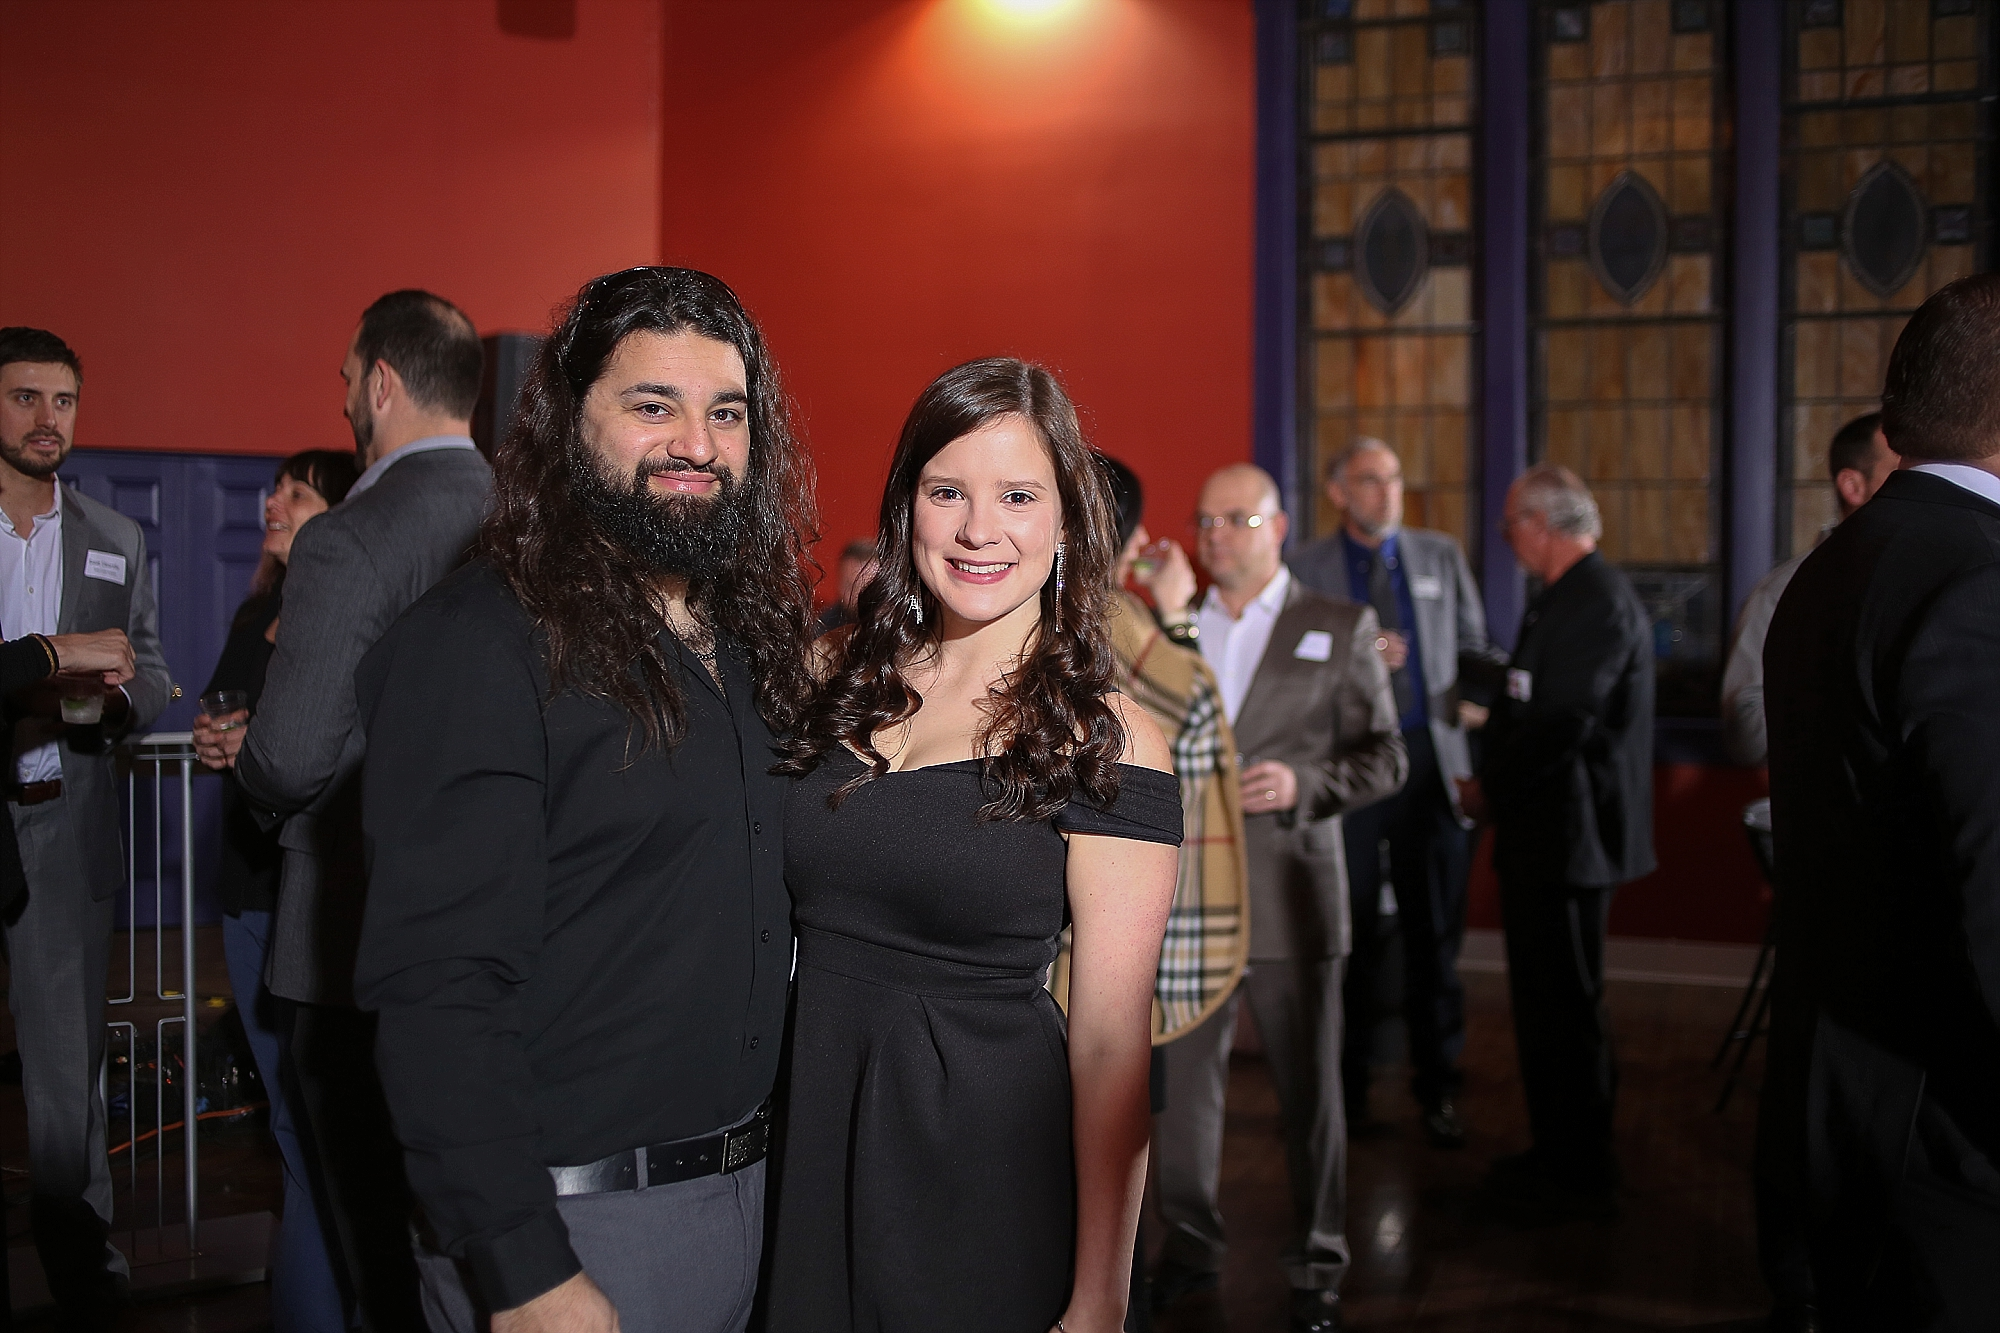 New River Valley Home Builder's Association Annual Gala & Excellence in Building Award Ceremony 2019